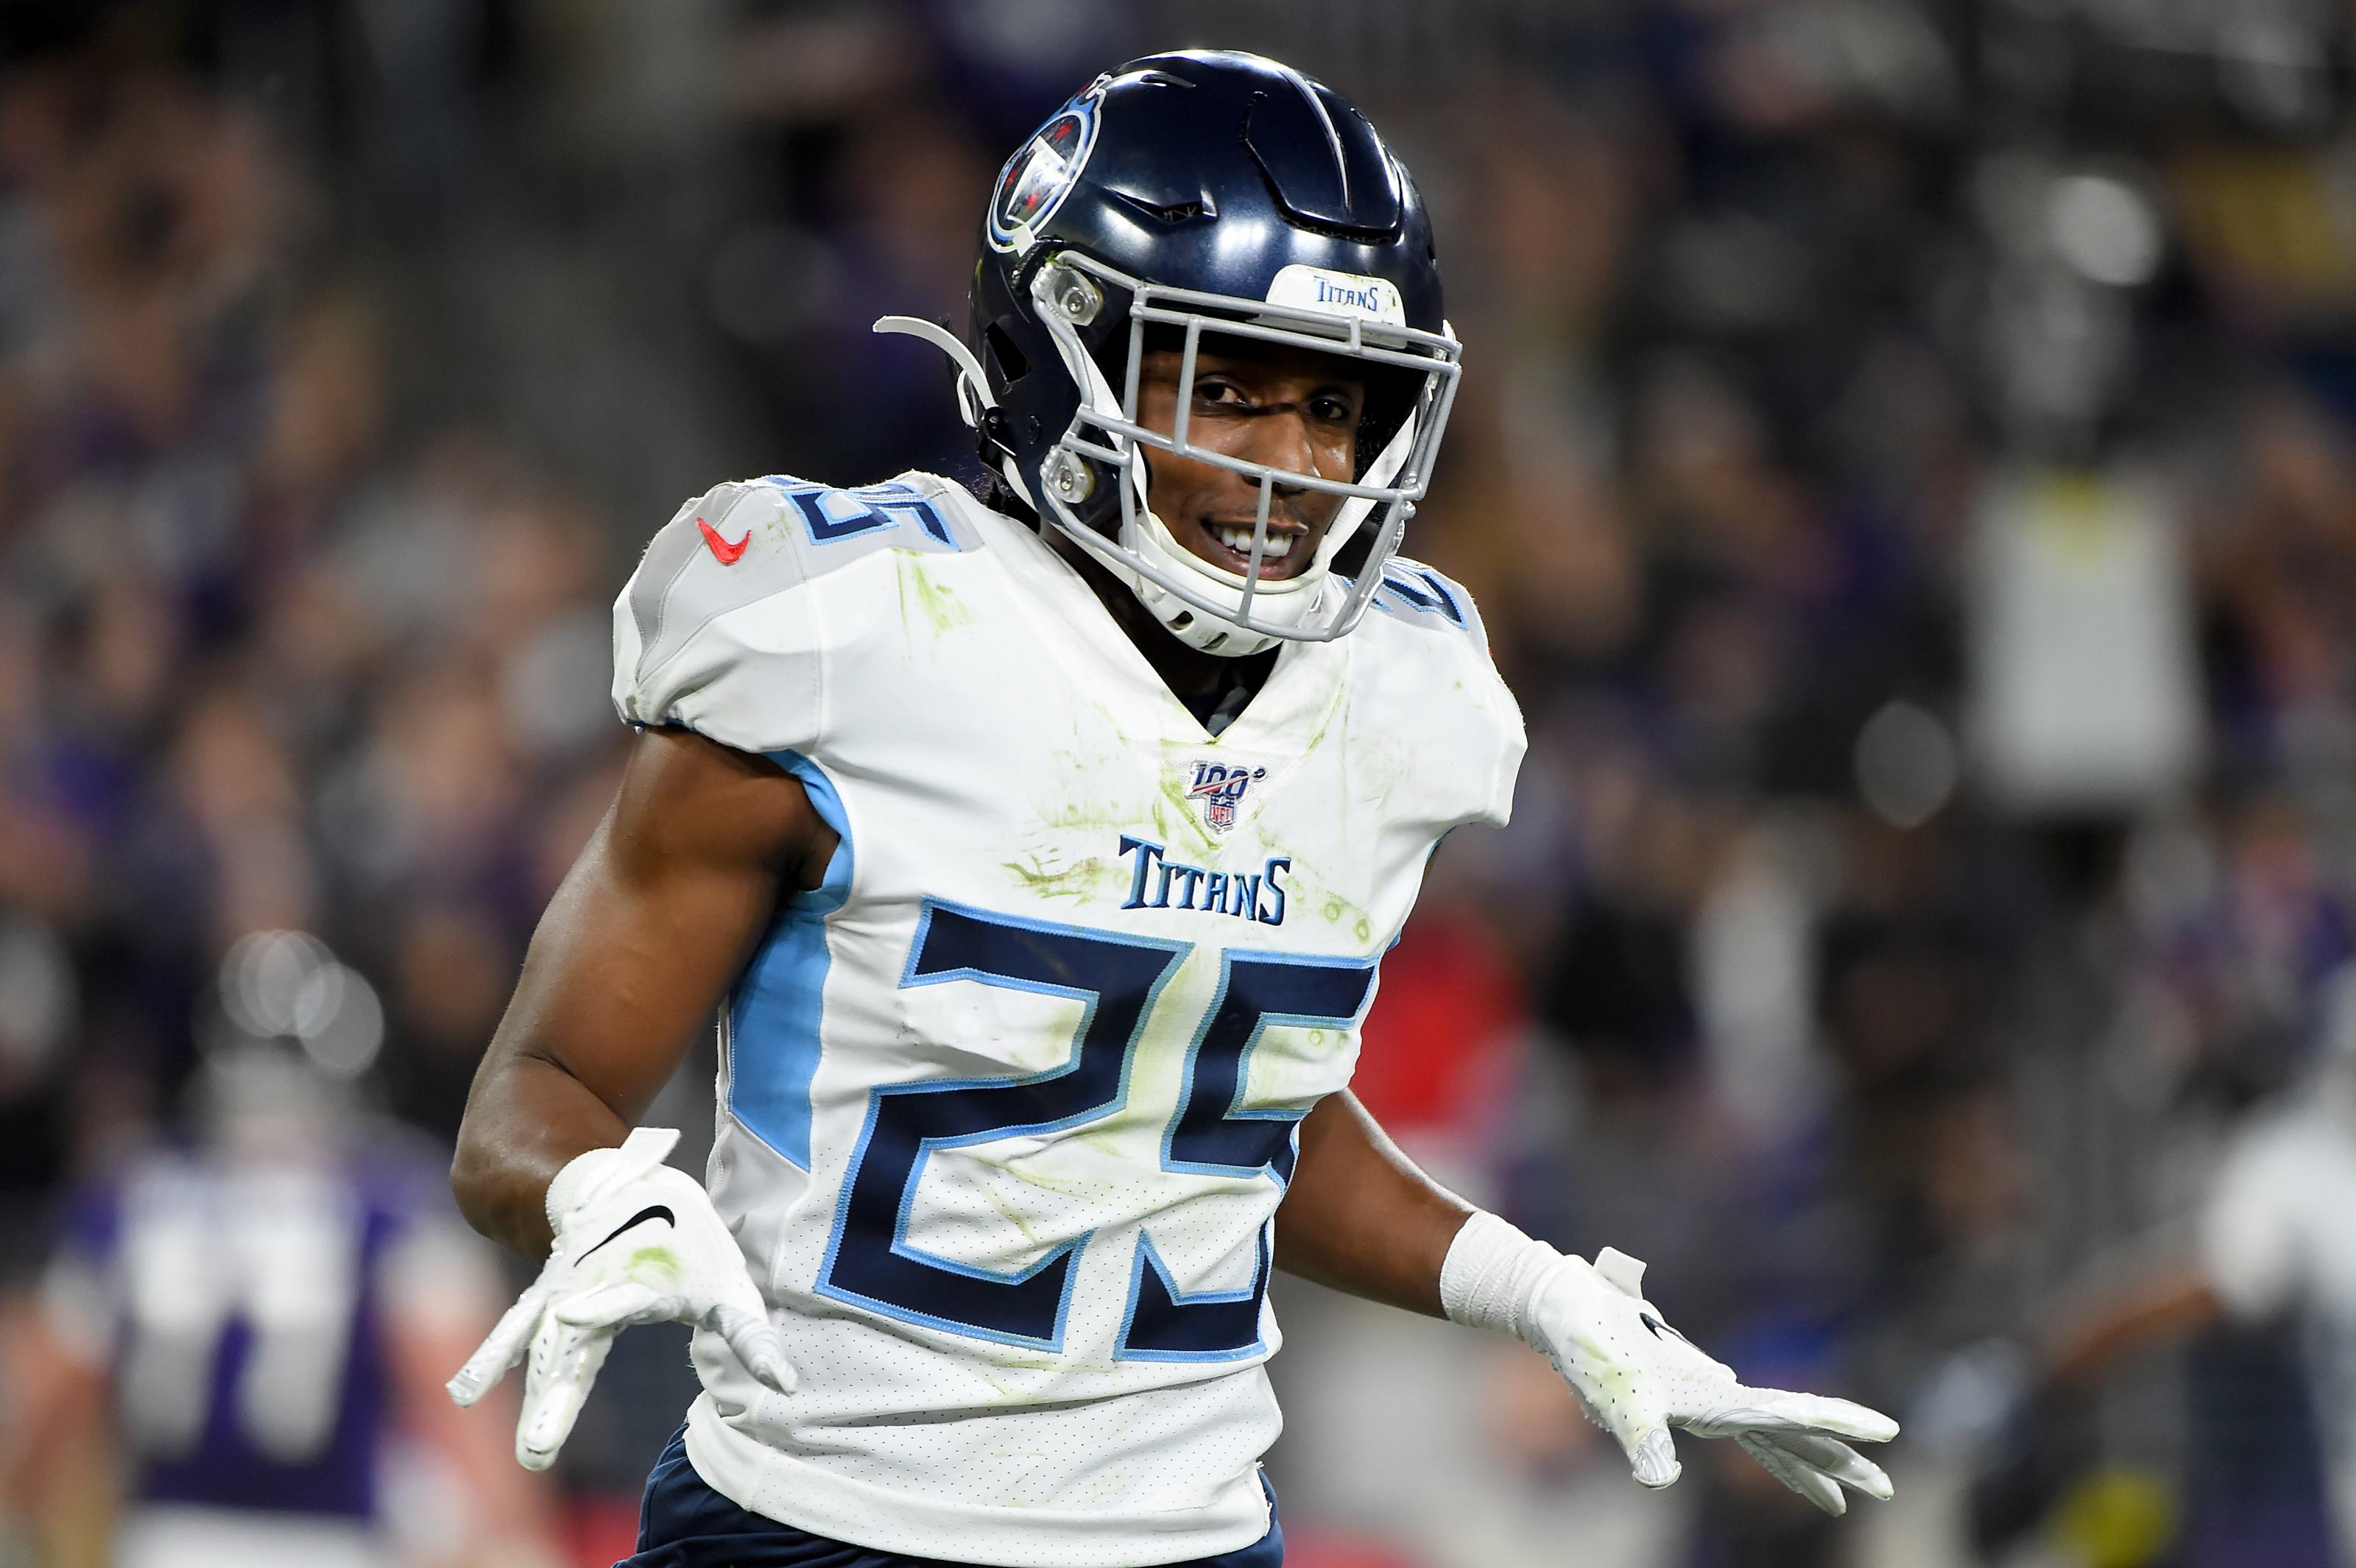 Should Tennessee Titans pick up Adoree' Jackson's fifth-year option?